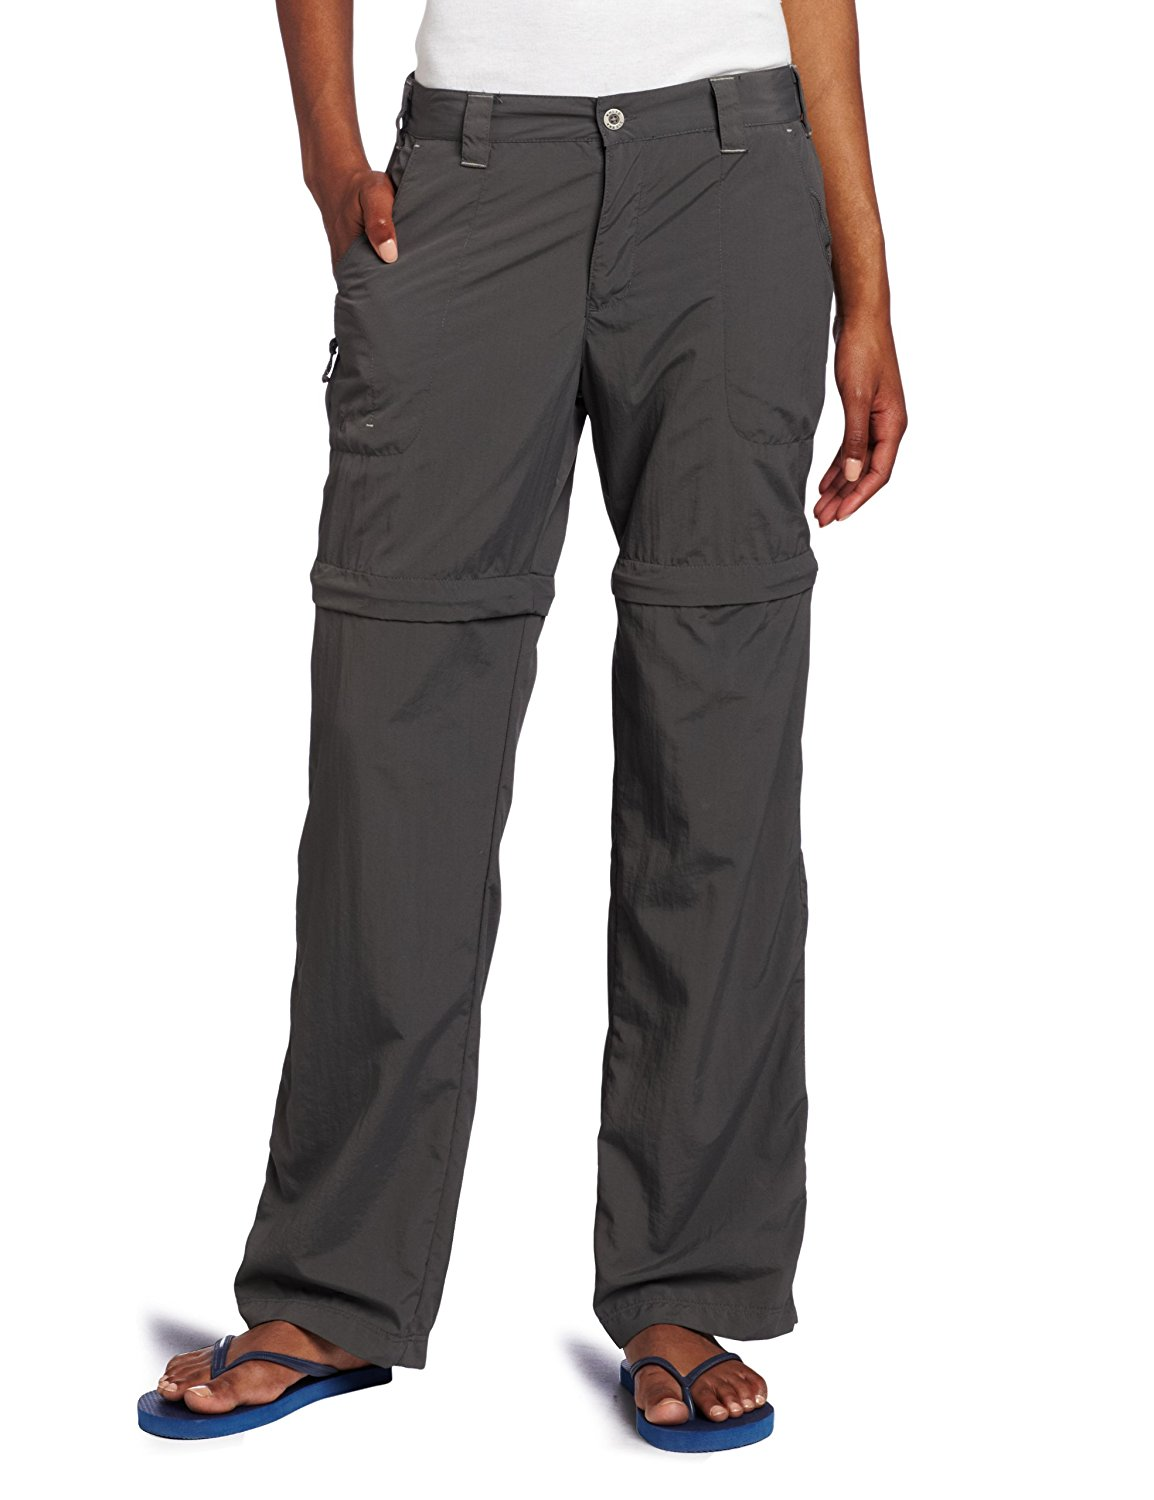 845296e53dd Convertible Travel Pants for Women  Pack them or forget them